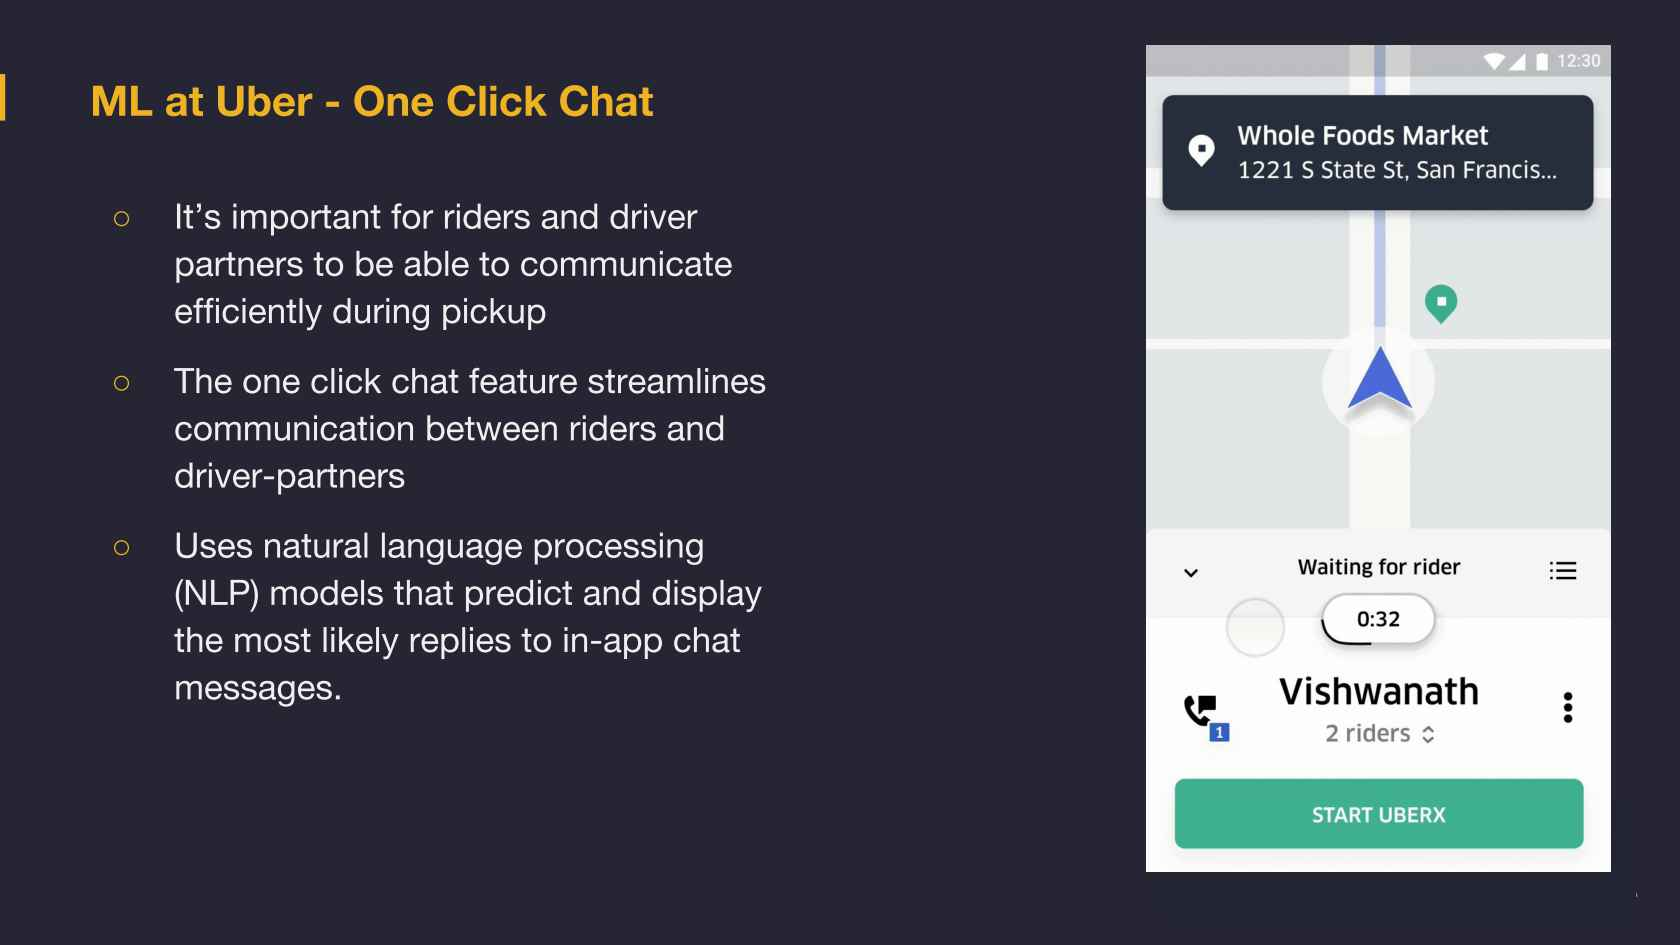 Michelangelo - Machine Learning @Uber